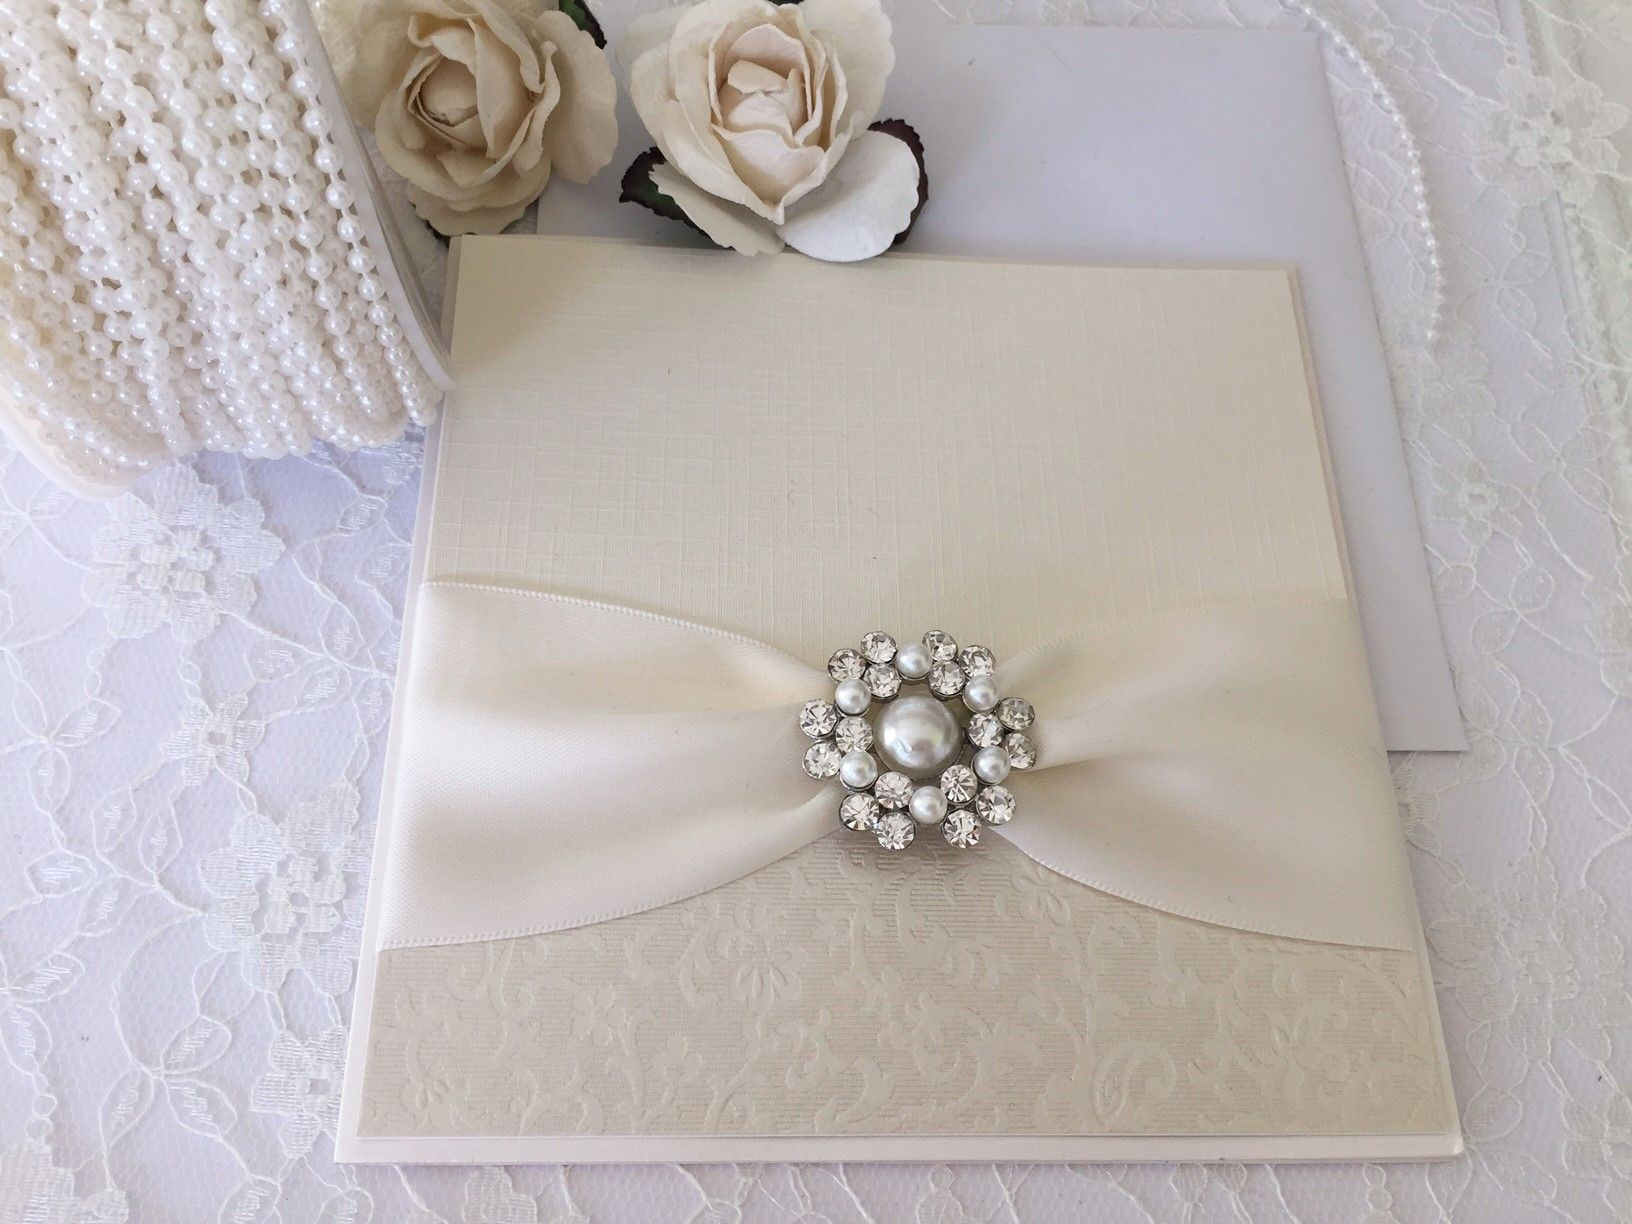 Vintage style invitations with pearl brooches